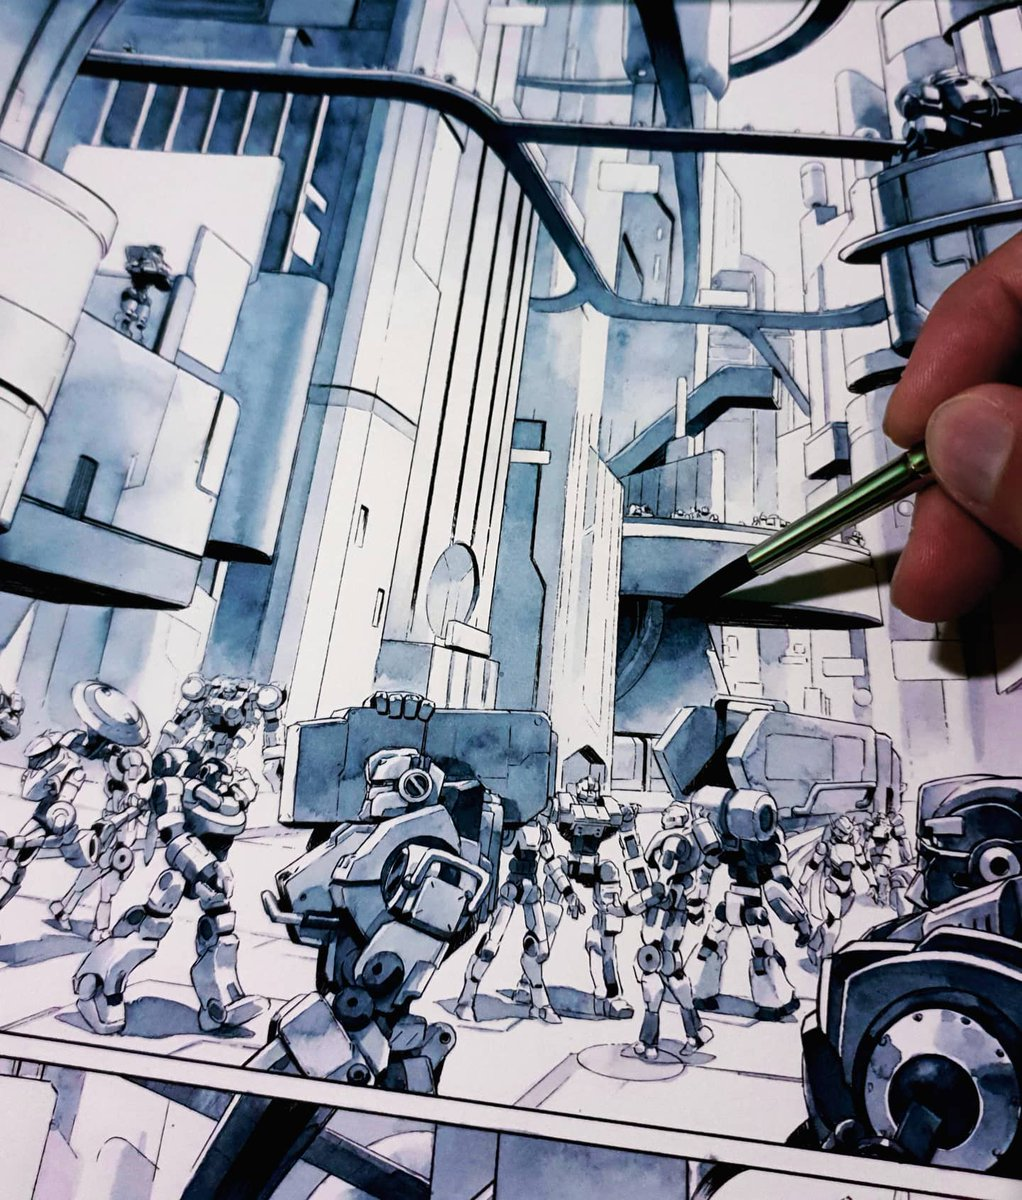 Working on Astrobots comicbook!  - #comic #watercolor #toynotch #mecha #robot #artpic.twitter.com/j8LK1UUeXl